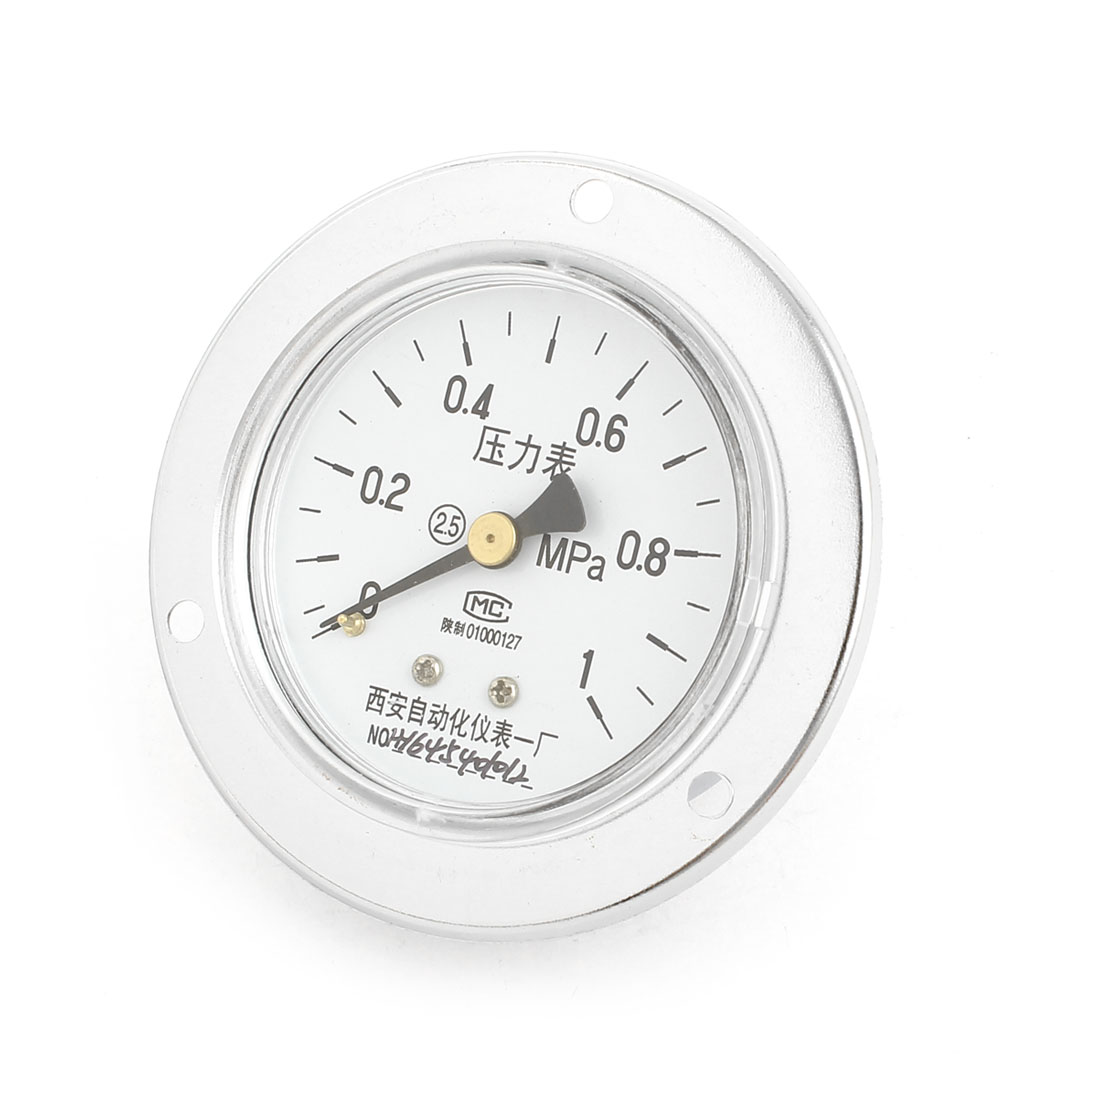 13mm Male Thread Universal Water Air Vacuum Pressure Meter Gauge 0-1MPa 60mm